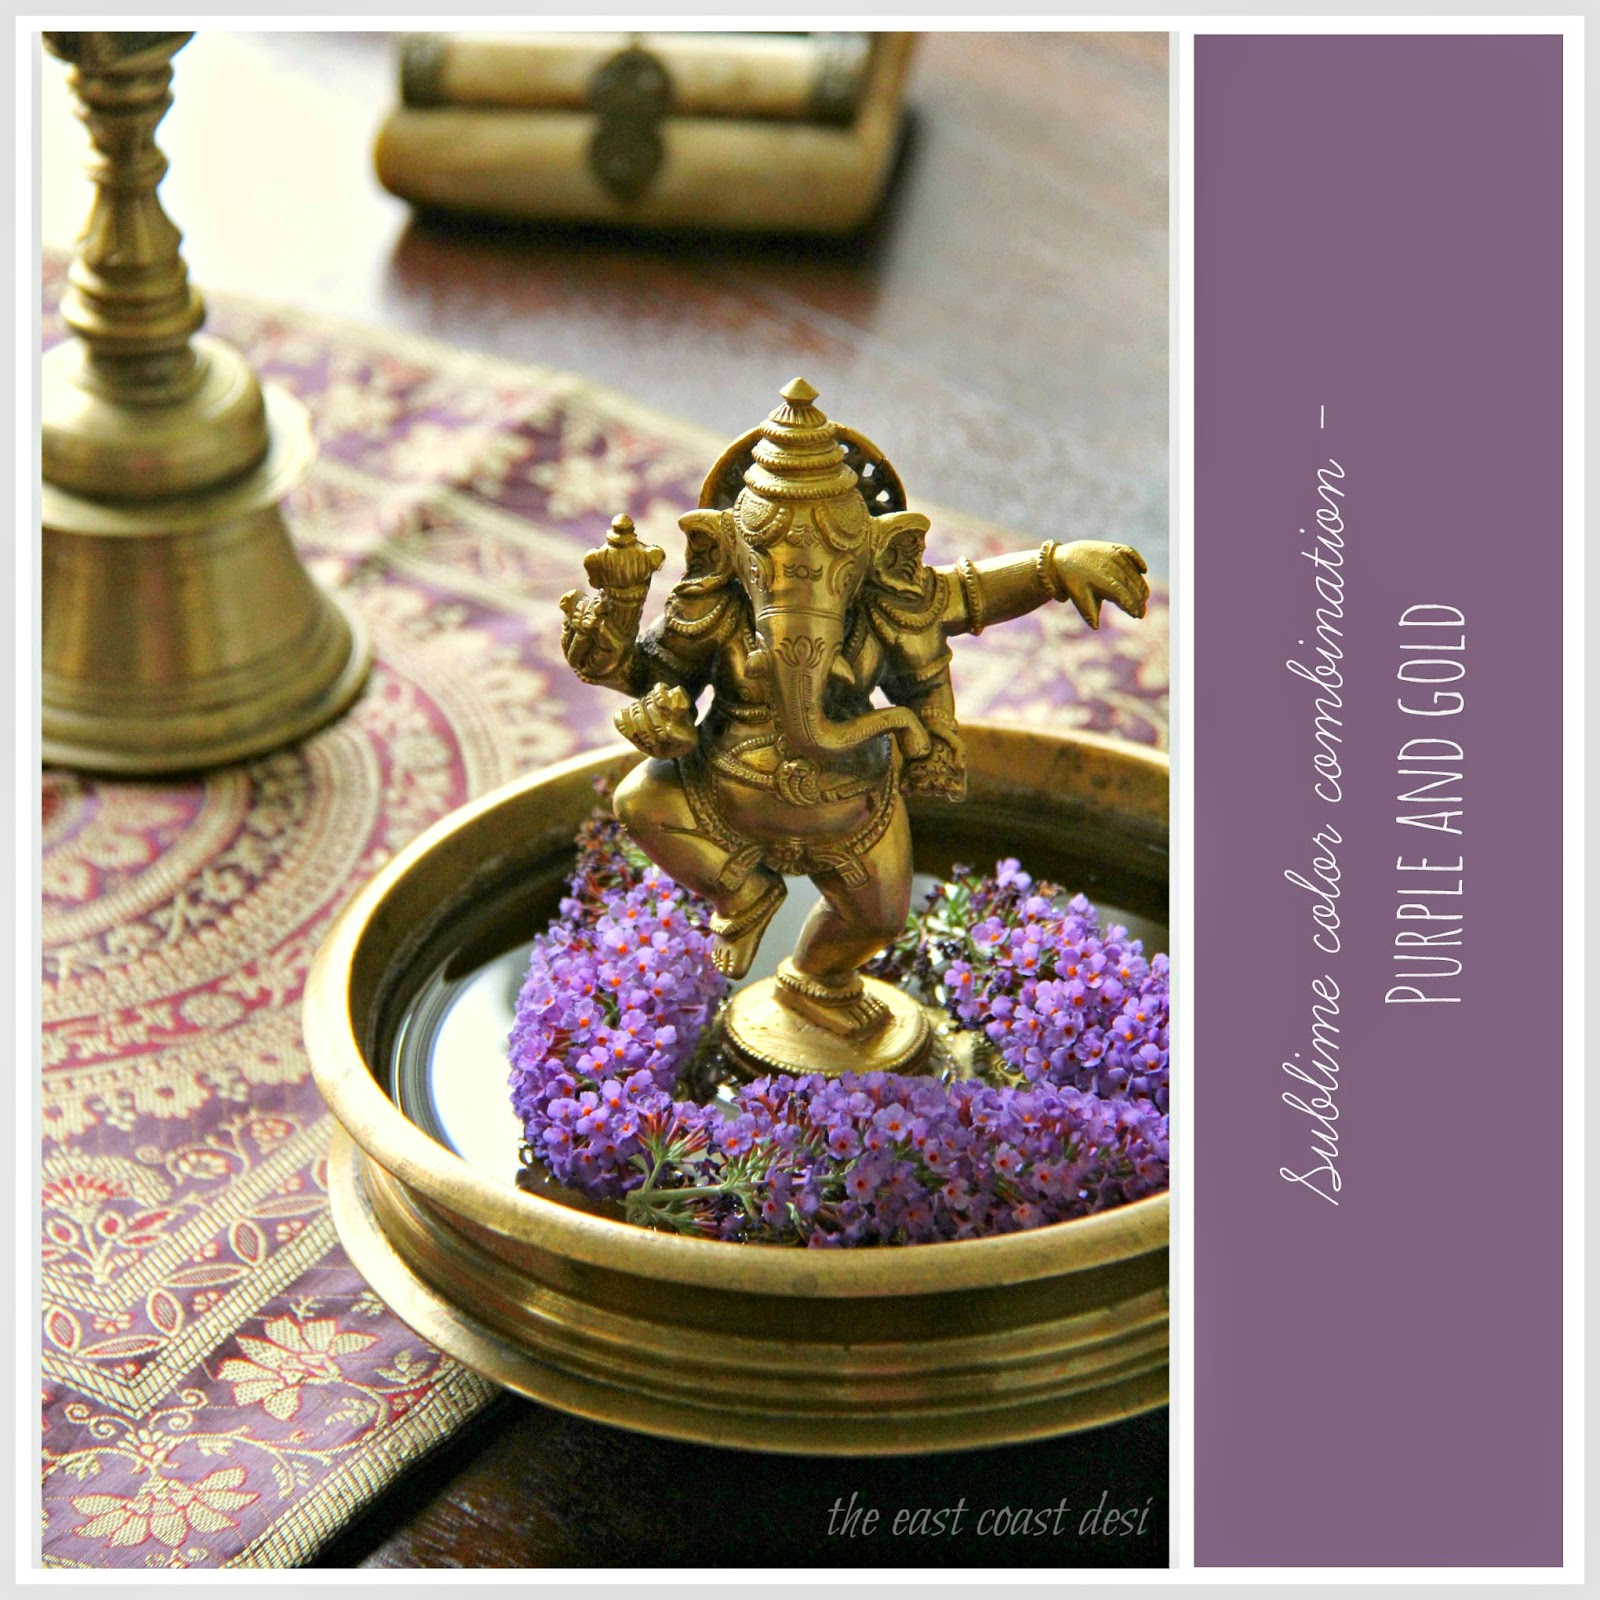 Ganesh chaturthi flowers may flower blog - Place A Brass Ganesha Statue In The Center Of A Urli And Float Seasonal Flowers To Add